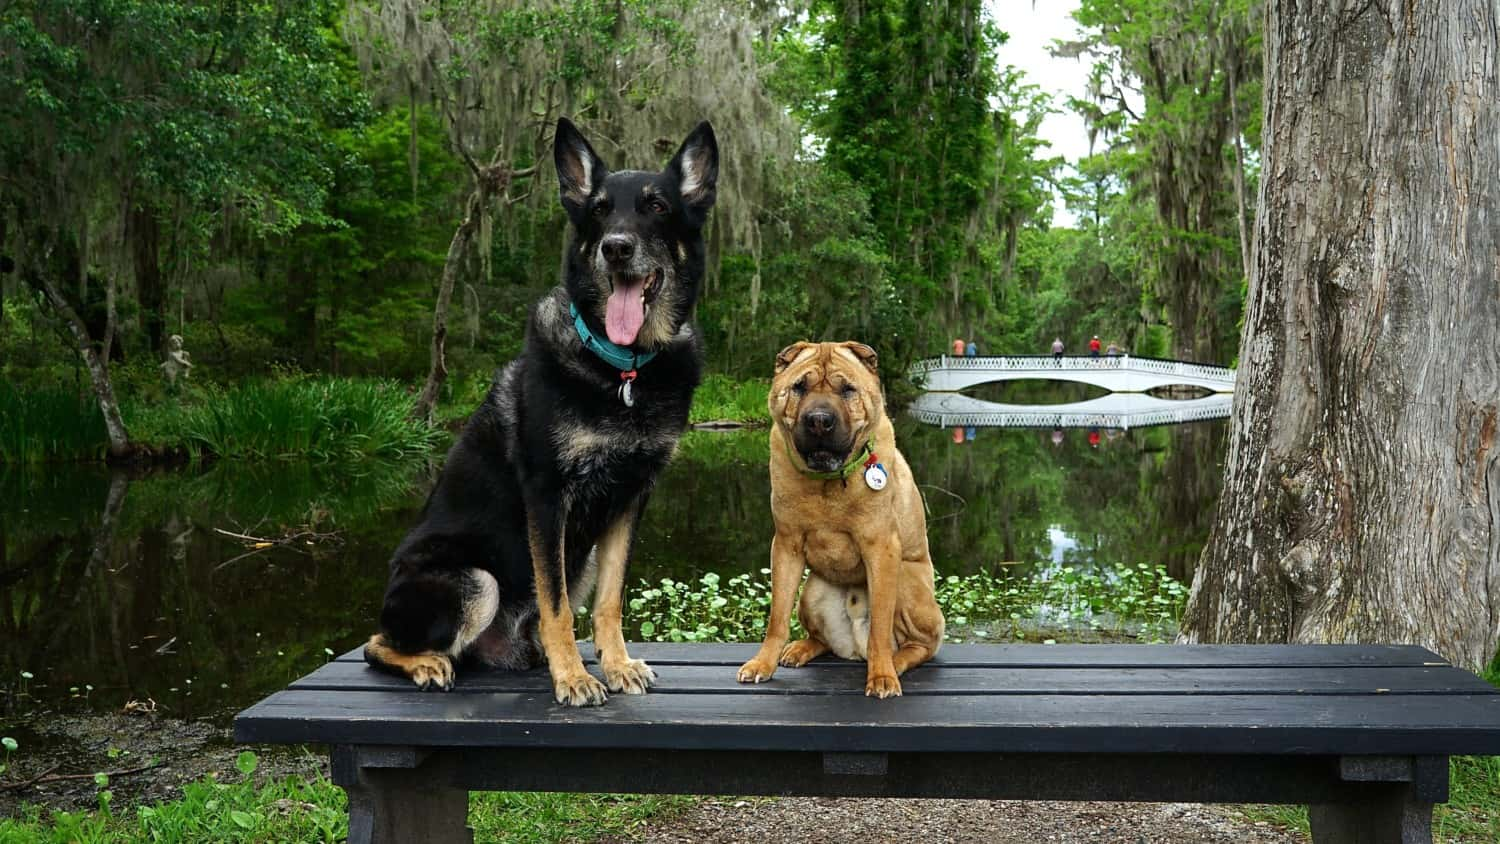 South Carolina's Top Pet Friendly Attraction: Magnolia Plantation & Gardens